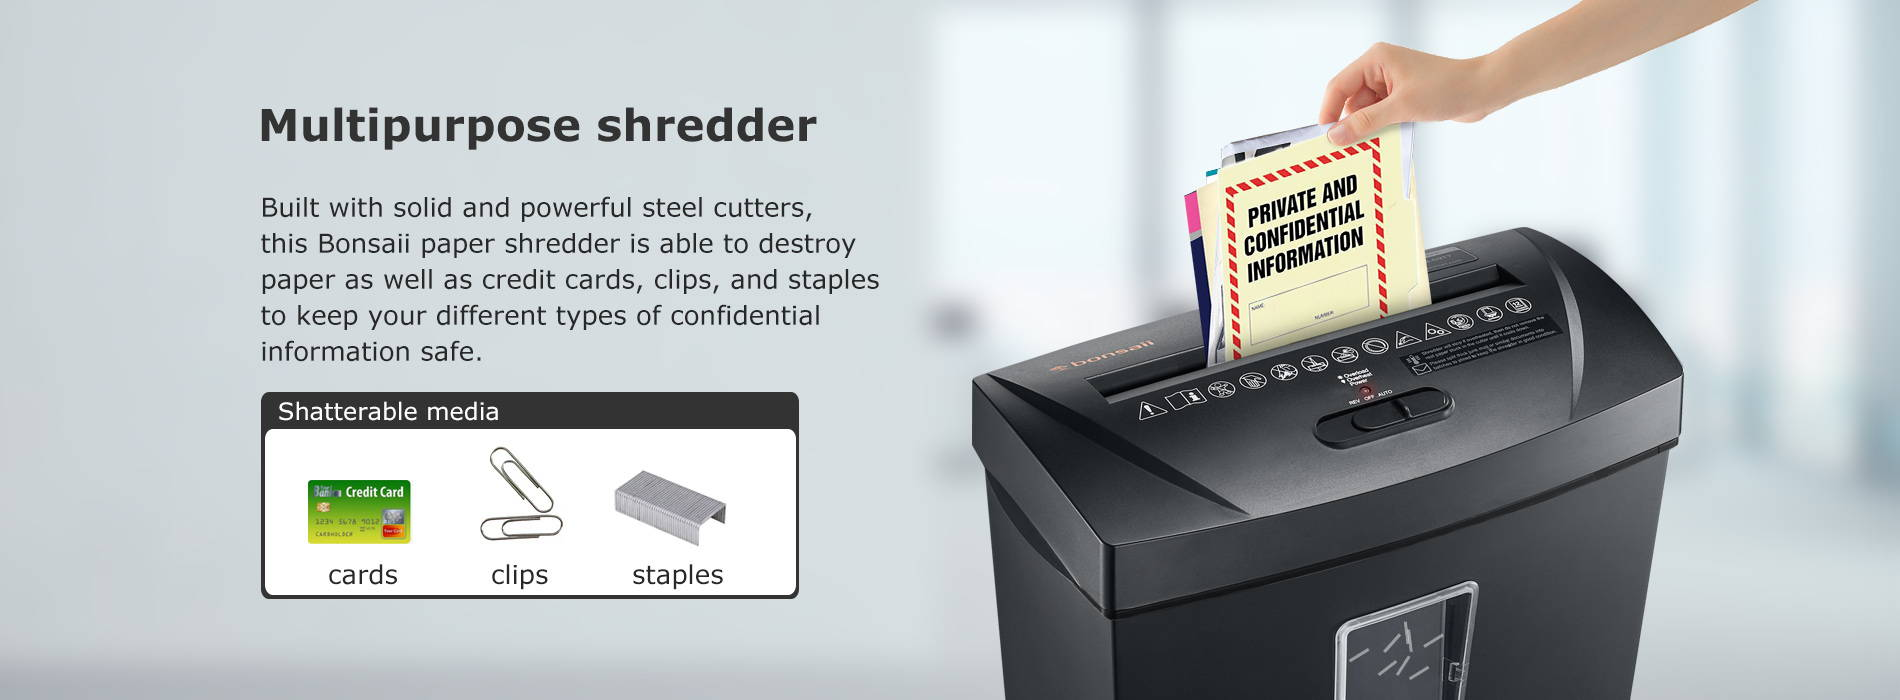 Multipurpose shredder Built with solid and powerful steel cutters, this Bonsaii paper shredder is able to destroy paper as well as credit cards, clips, and staples to keep your different types of confidential information safe.